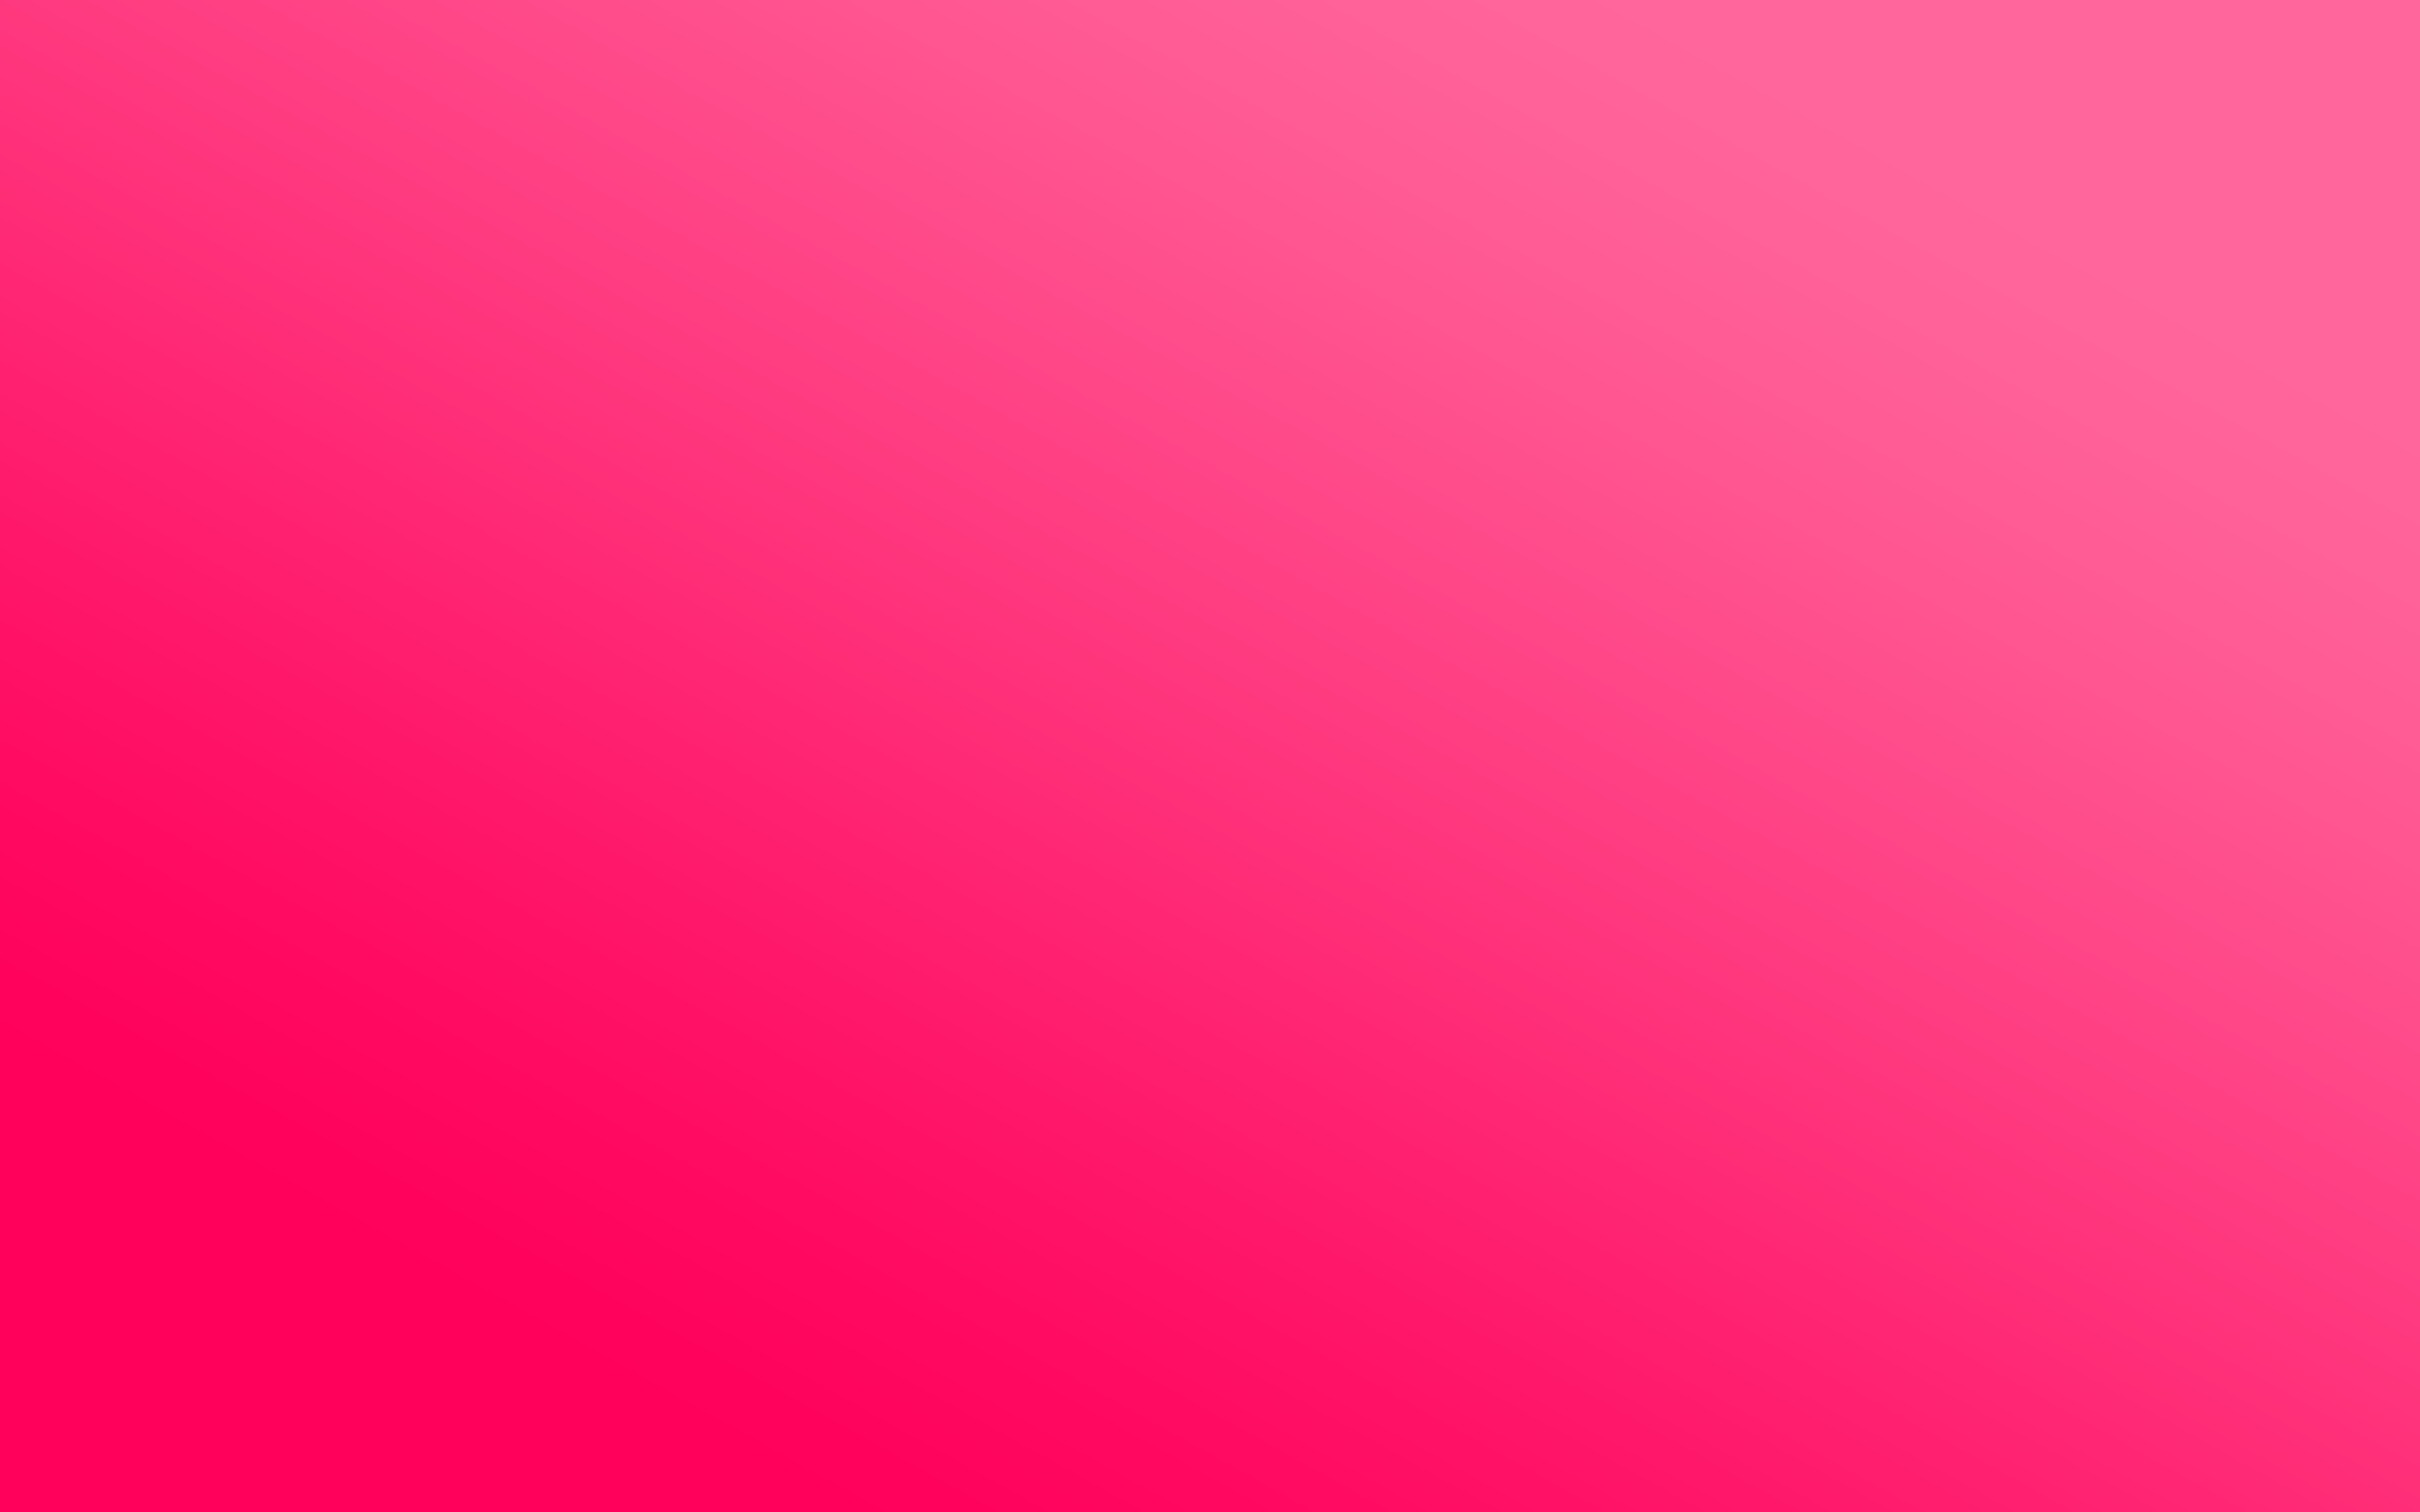 HD Background Dark Pink Solid Color Gradient Bright Light Wallpaper 2560x1600